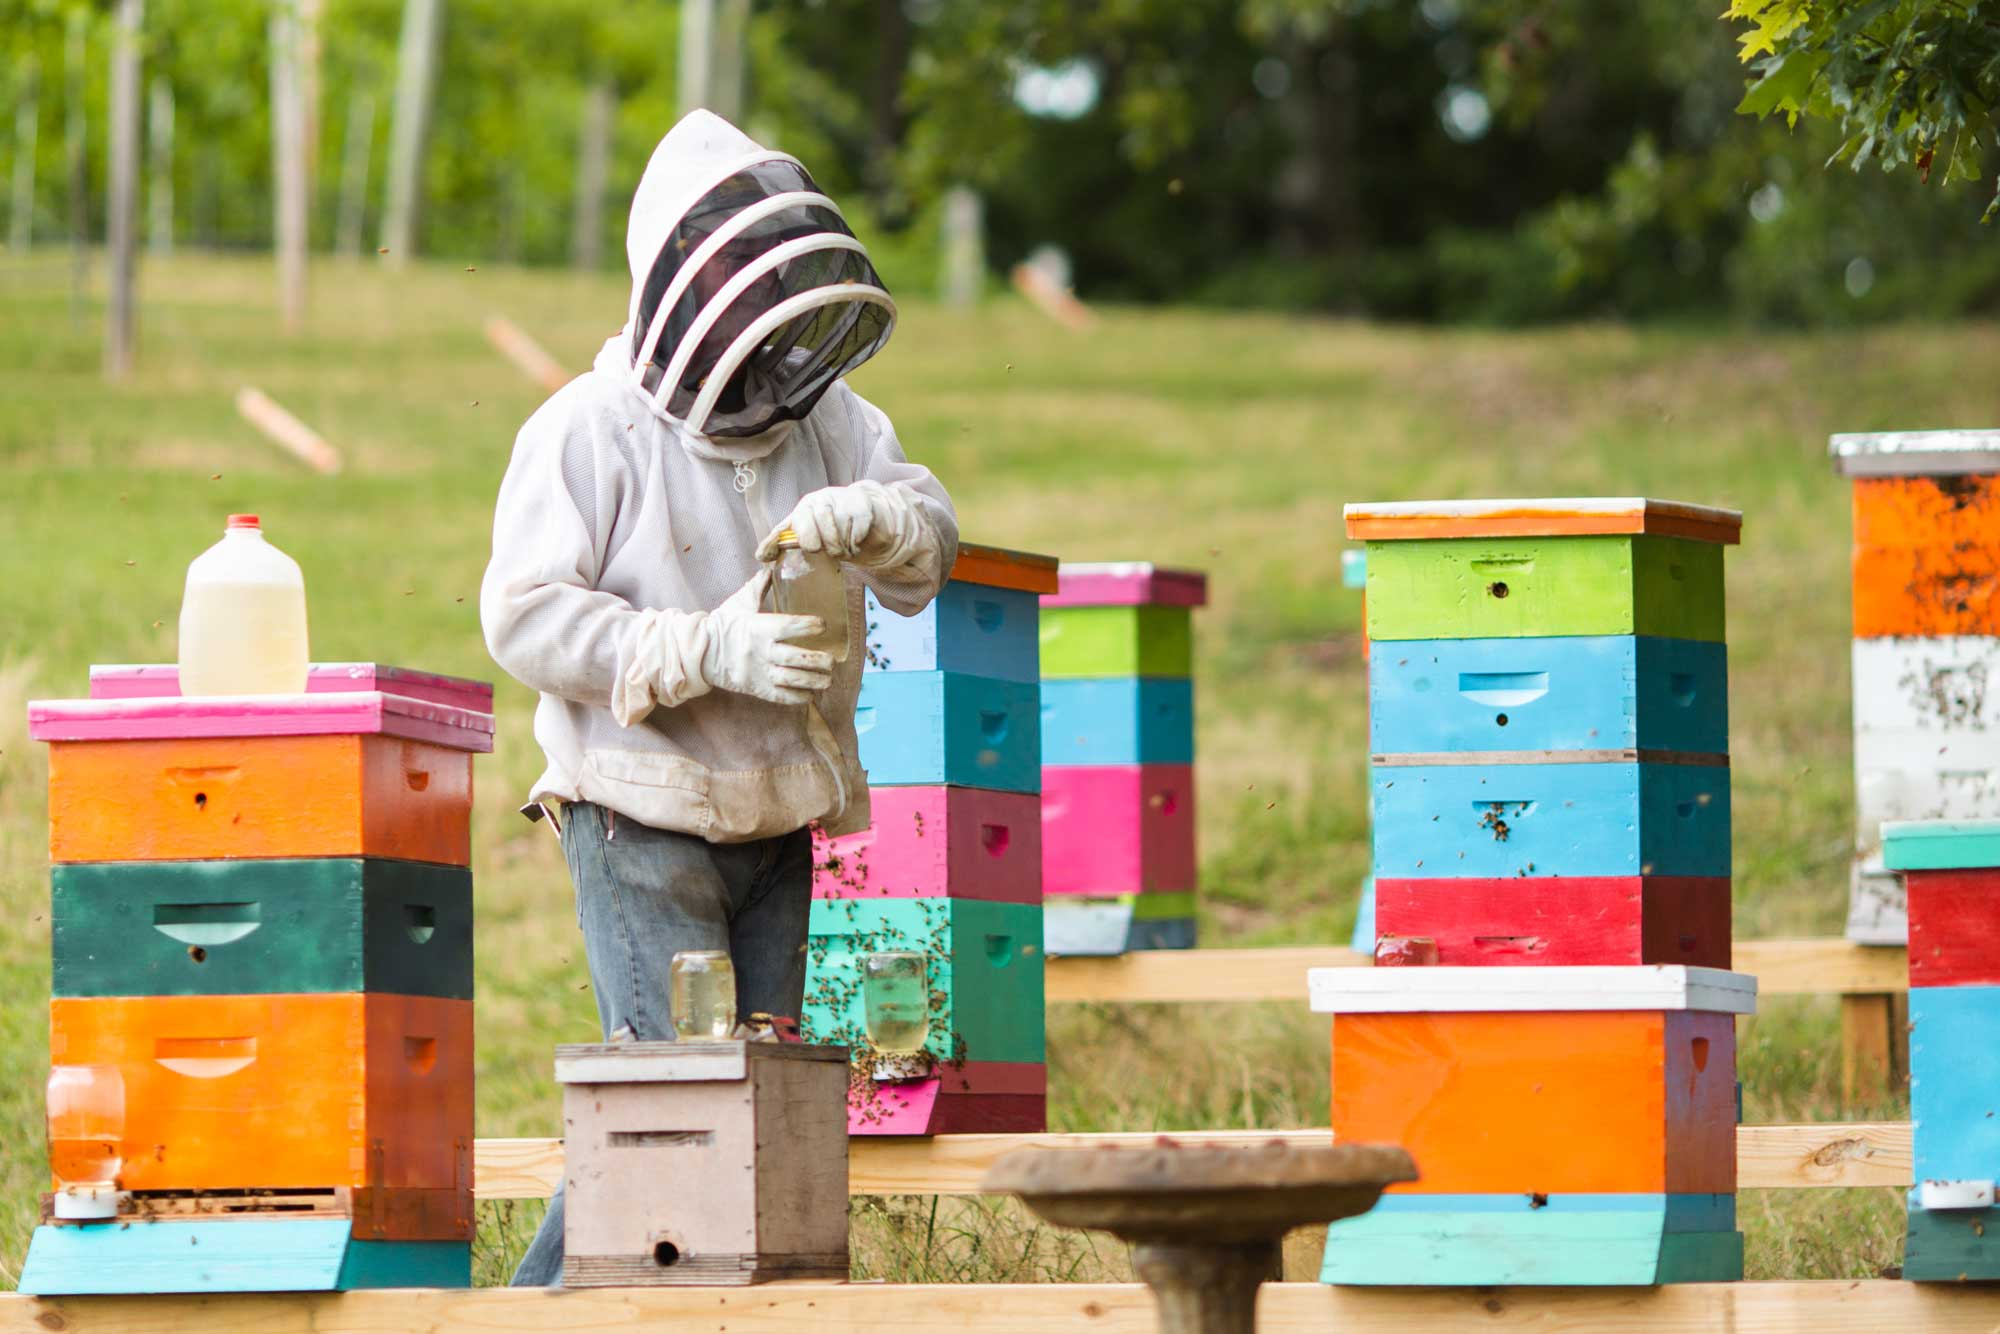 A man in a beekeeper's hood with bee hives